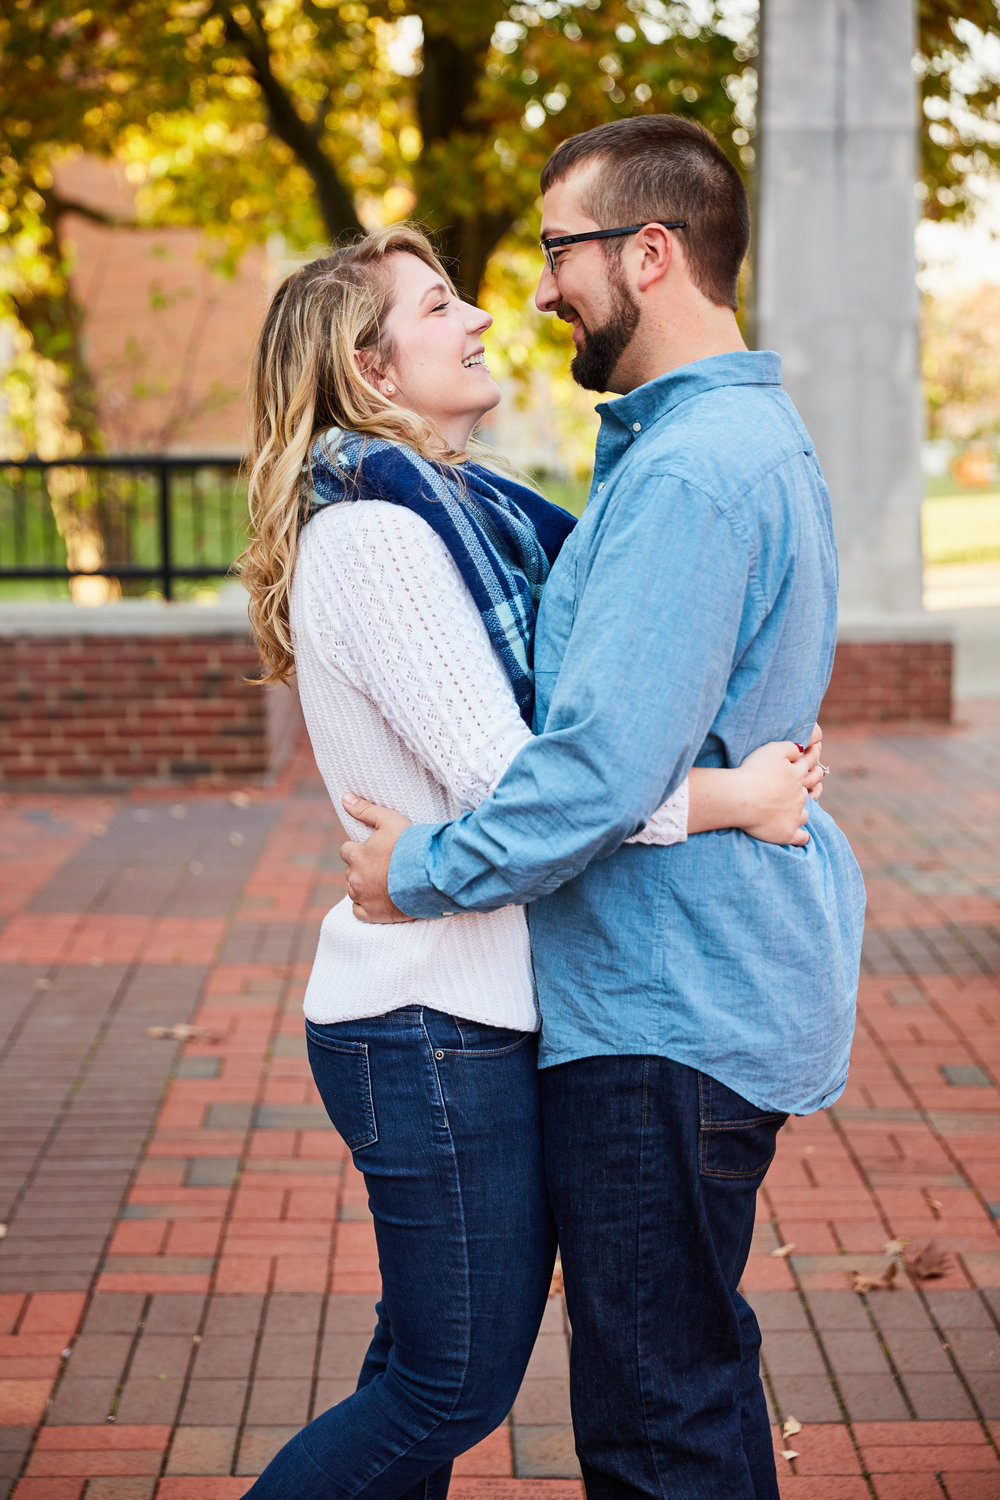 University of Kentucky Lexington Campus Alumni Engagement Photos by St Louis Wedding Photographers Oldani Photography 0 04.jpg